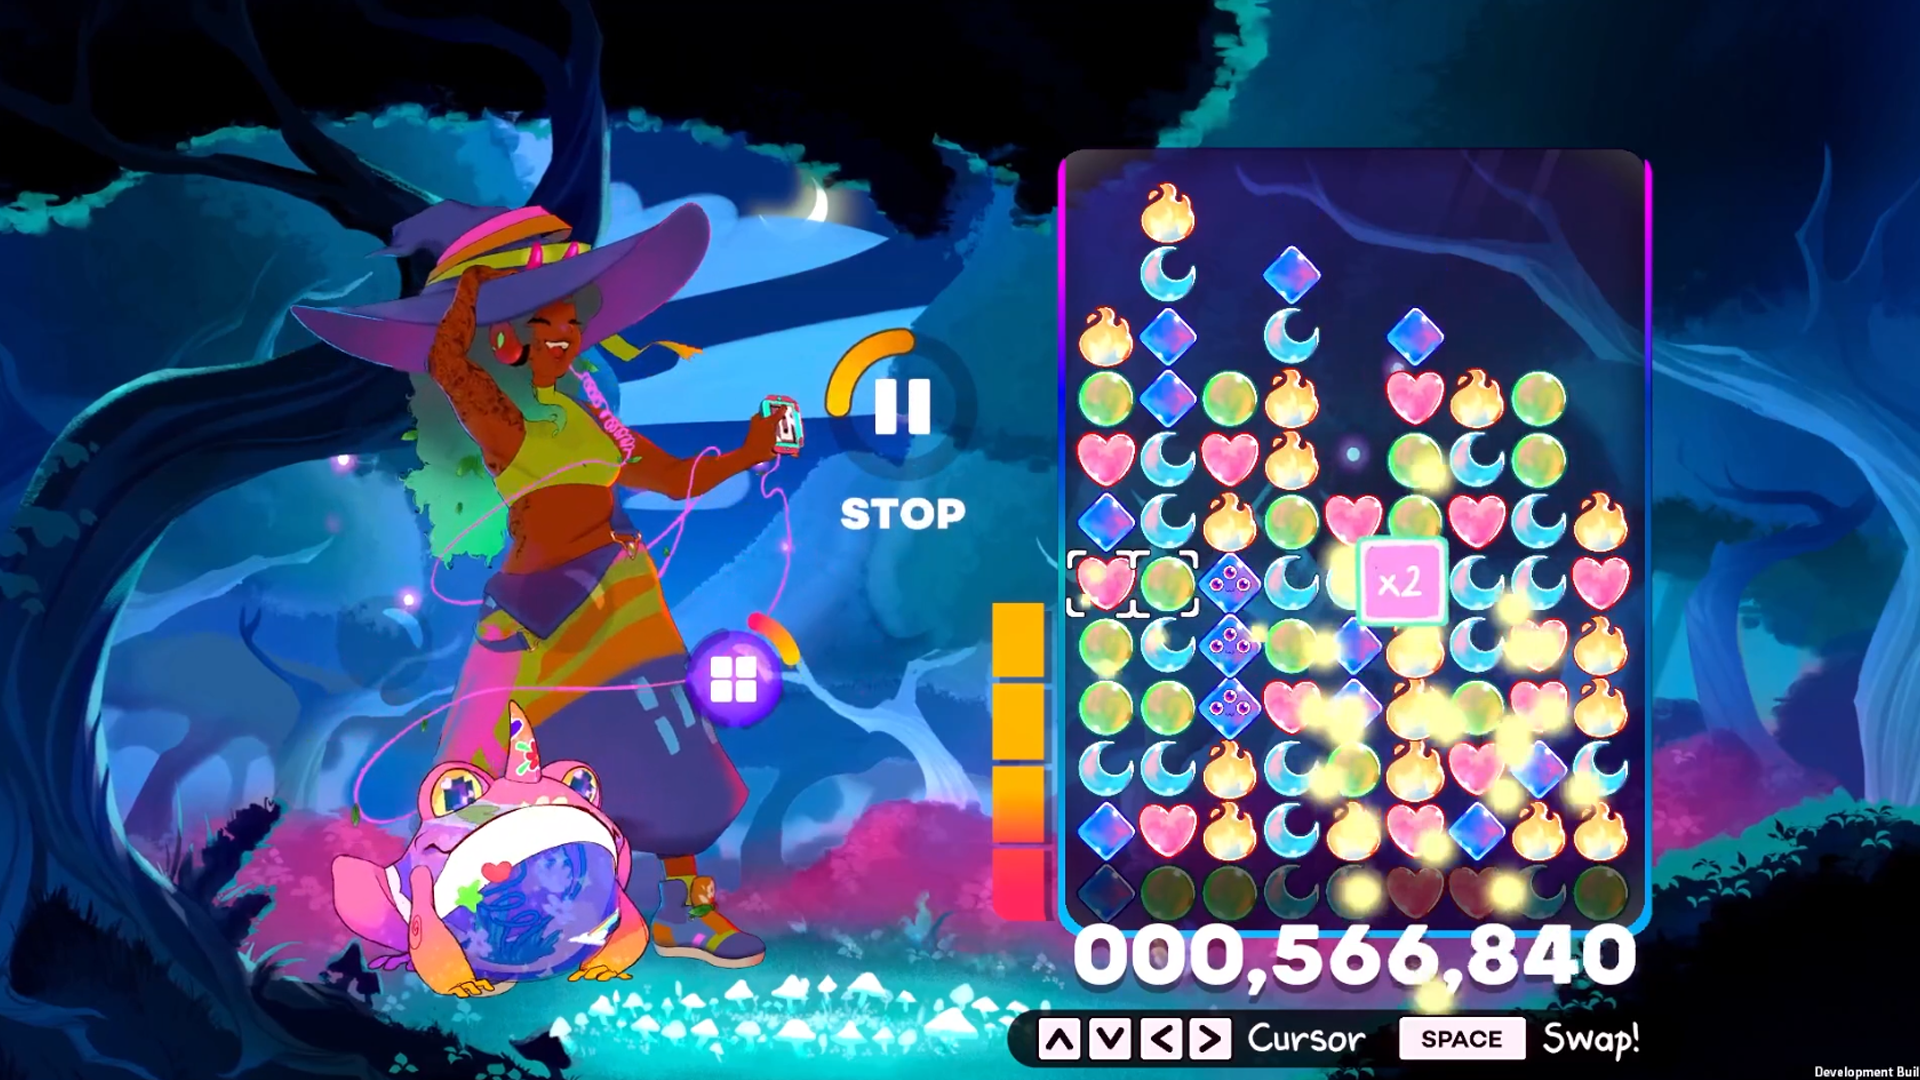 Gameplay of Spirit Swap. On the left stands Samar and her frog familiar, on the right is a game of match-3